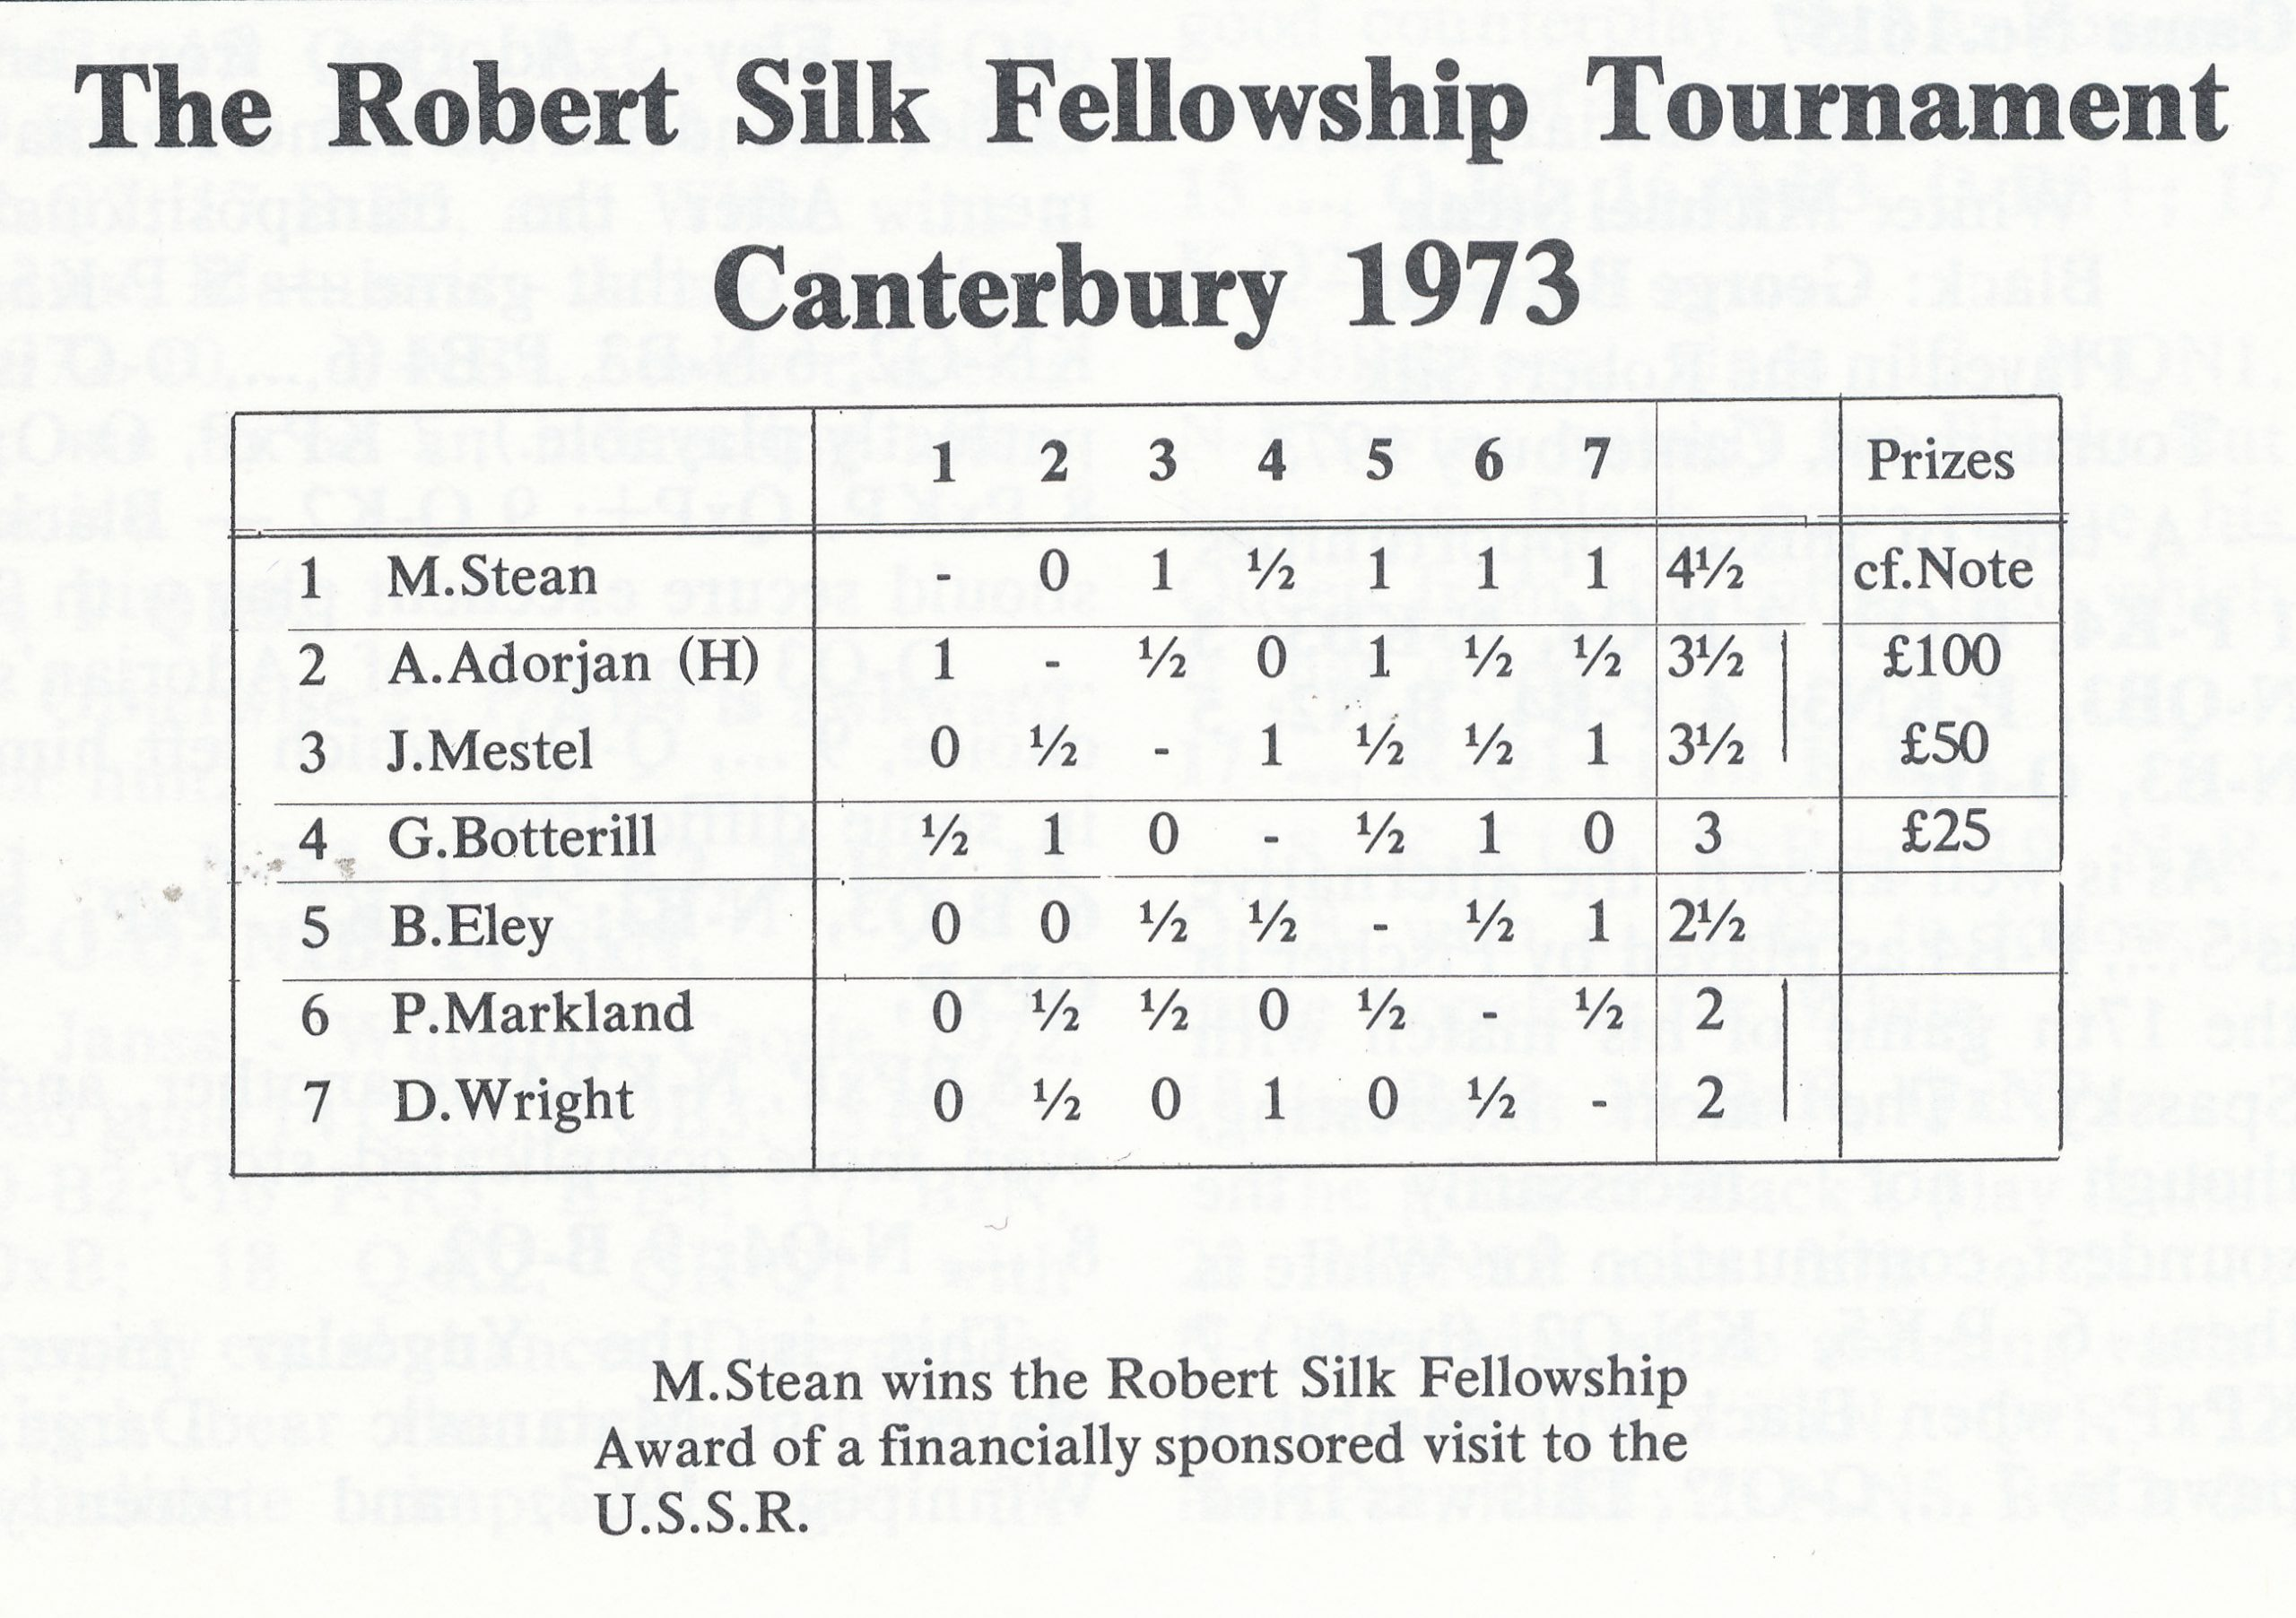 The Robert Silk Fellowship Tournament, Canterbury, 1973. Source : British Chess Magazine, Volume 93, Number 5, page 192